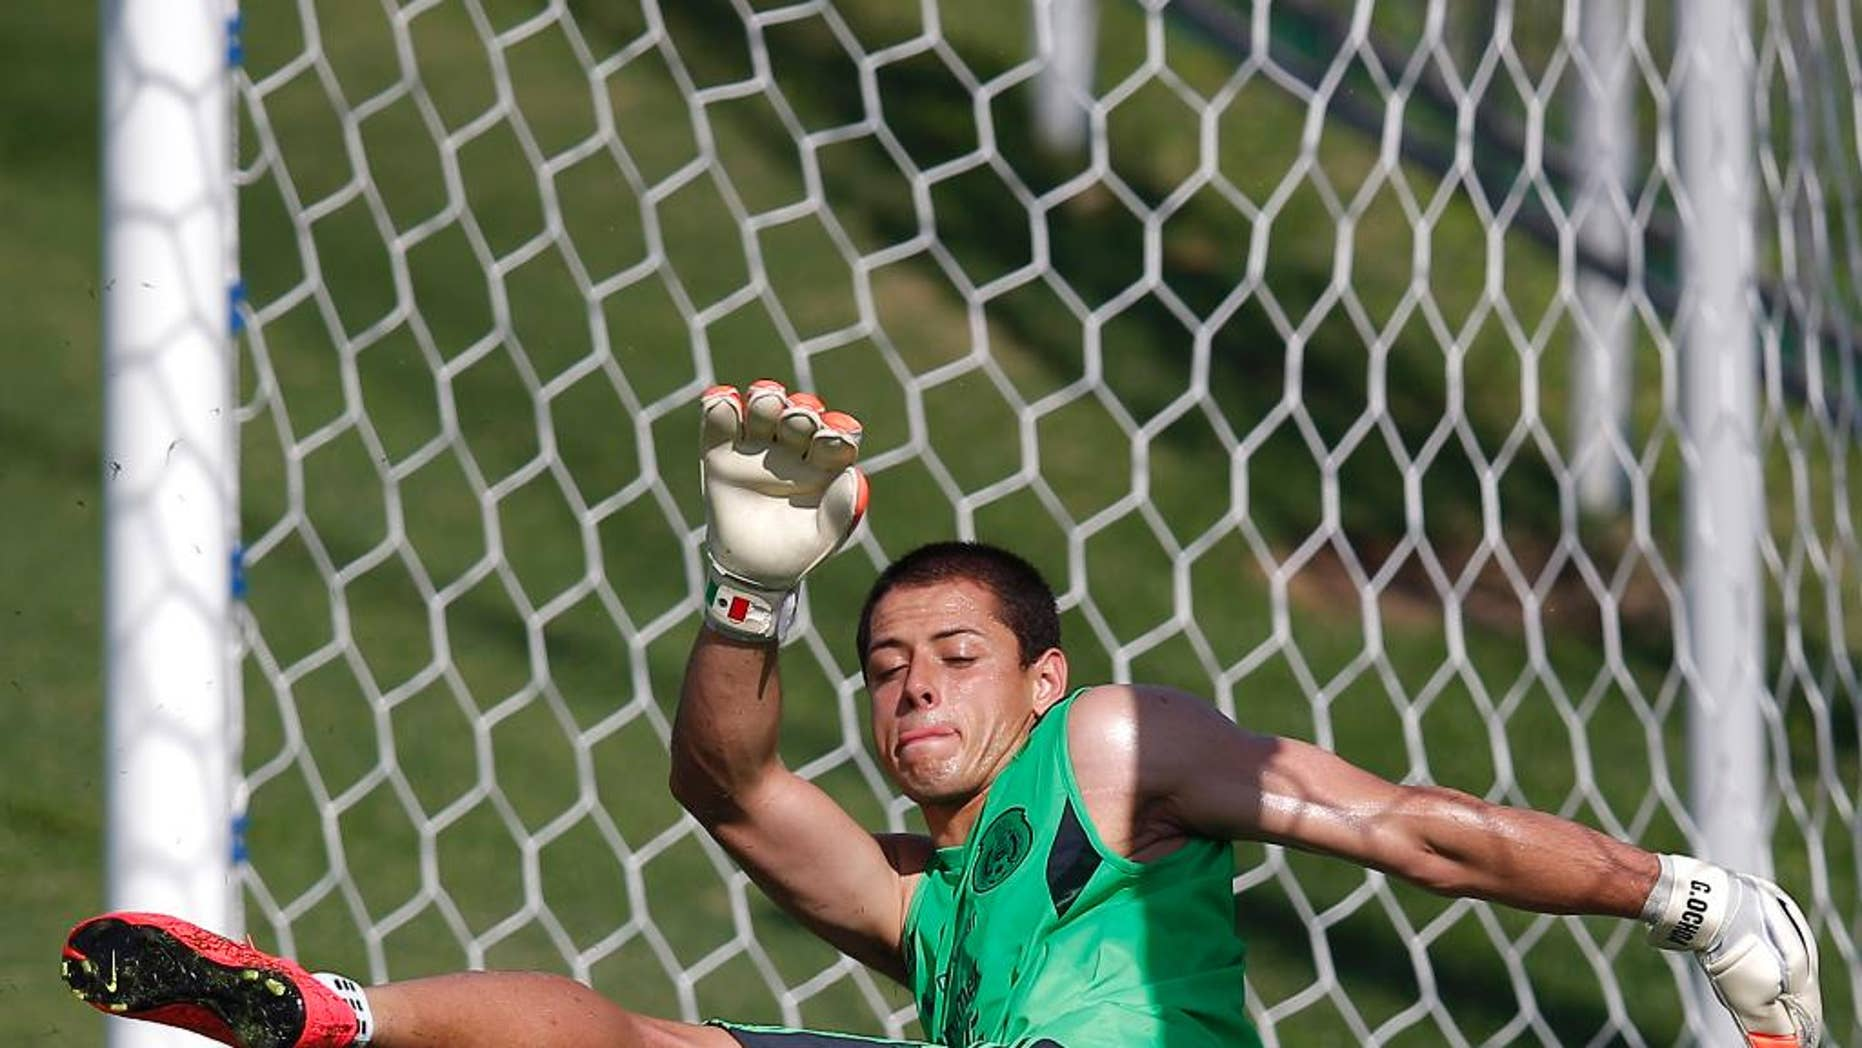 Mexico's national soccer player Javier Hernandez kicks the ball during a training session of Mexico in Santos, Brazil, Sunday, June 8, 2014. Mexico plays in group A of the 2014 soccer World Cup. (AP Photo/Eduardo Verdugo)